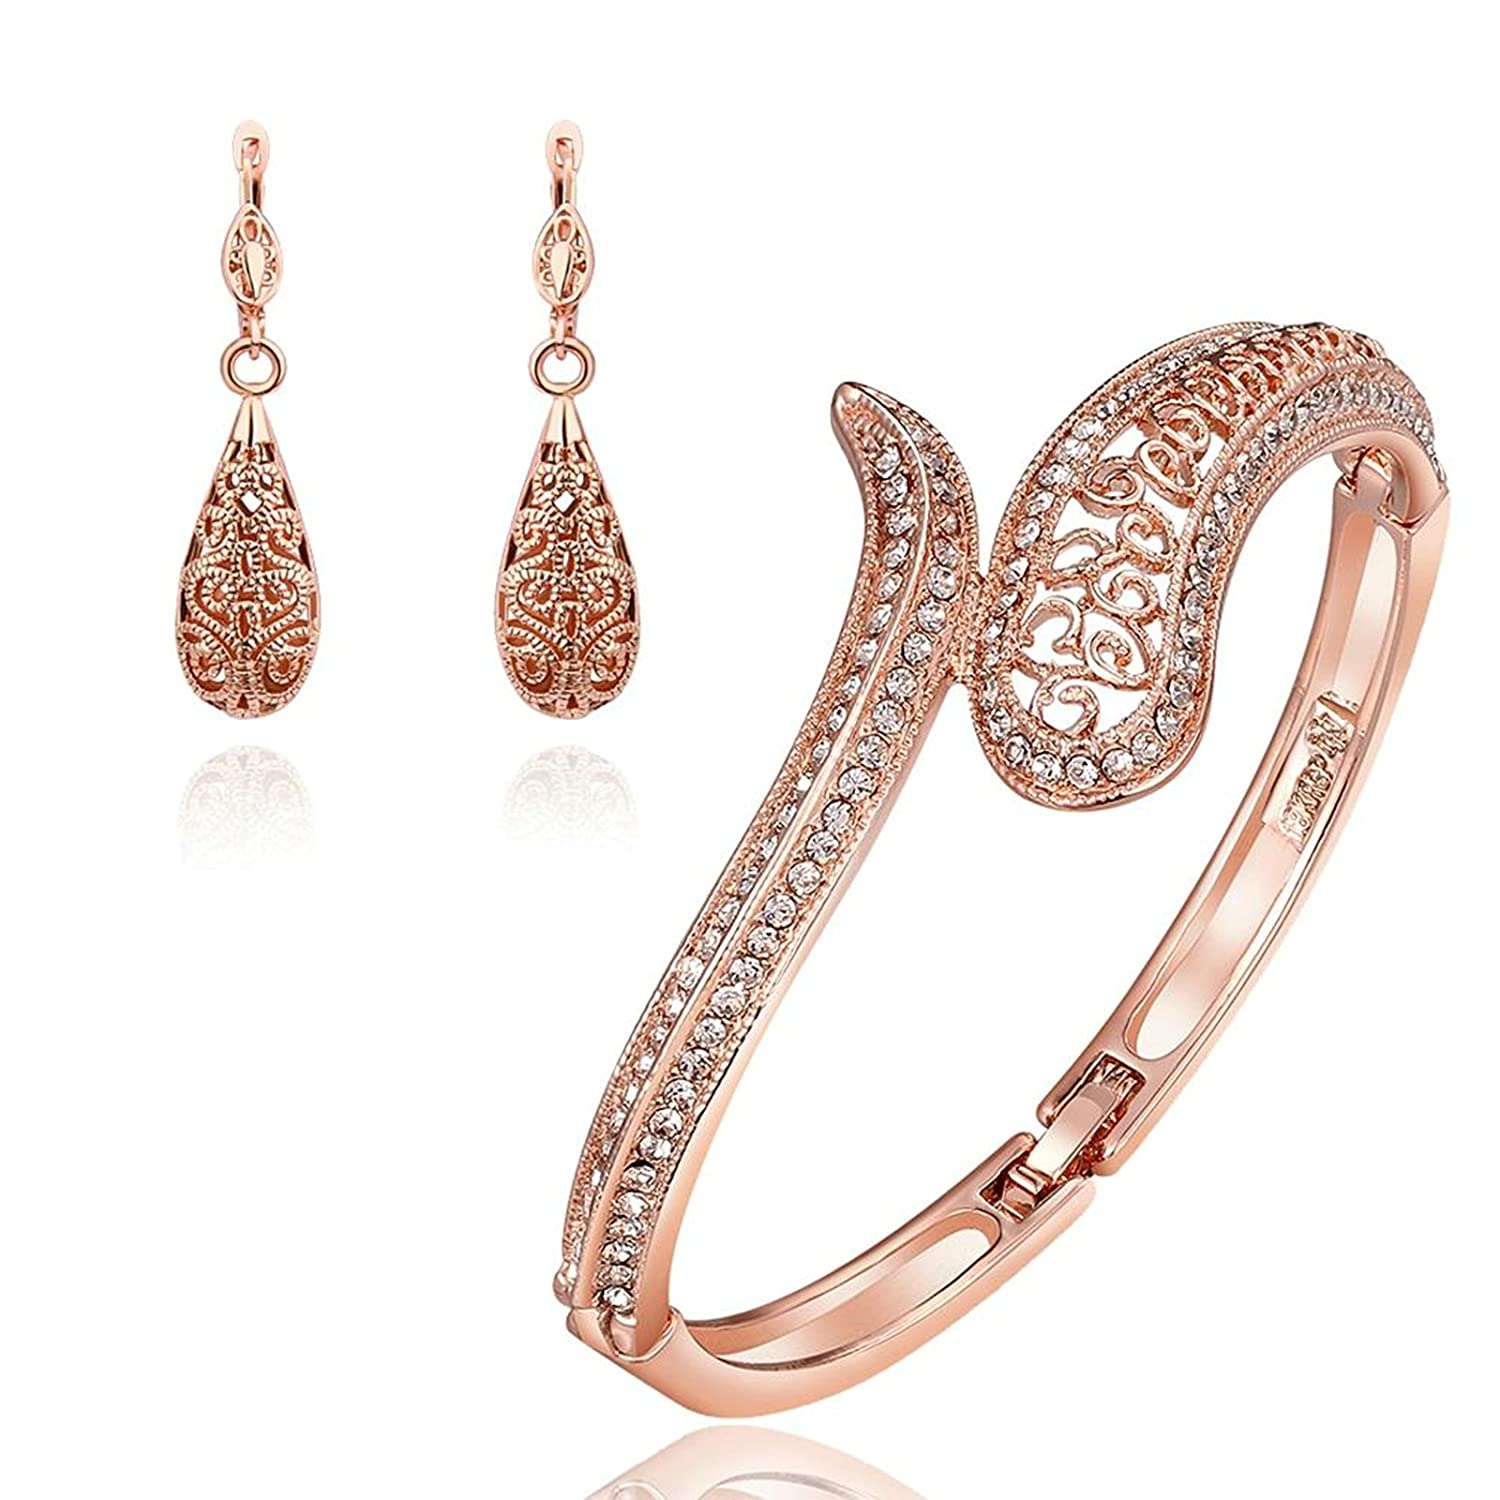 Gnzoe Fashion Jewelry Womens Bracelet Earring and Necklace Sets Rose Gold Teardrop Hollow